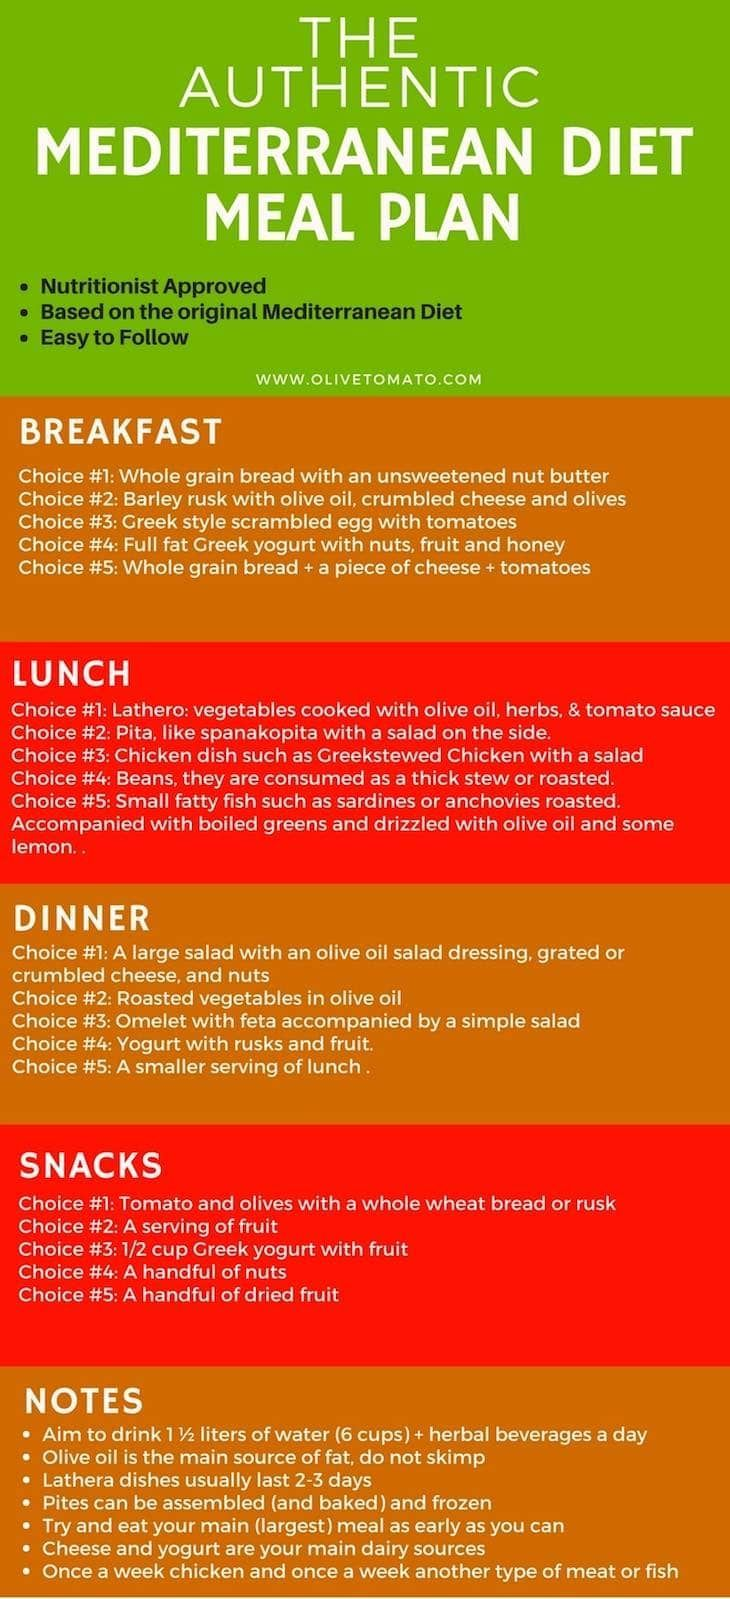 The Authentic Mediterranean Diet Meal Plan And Menu Olive Tomato In 2020 Mediterranean Diet Meal Plan Mediterranean Diet Recipes Diet Plan Menu